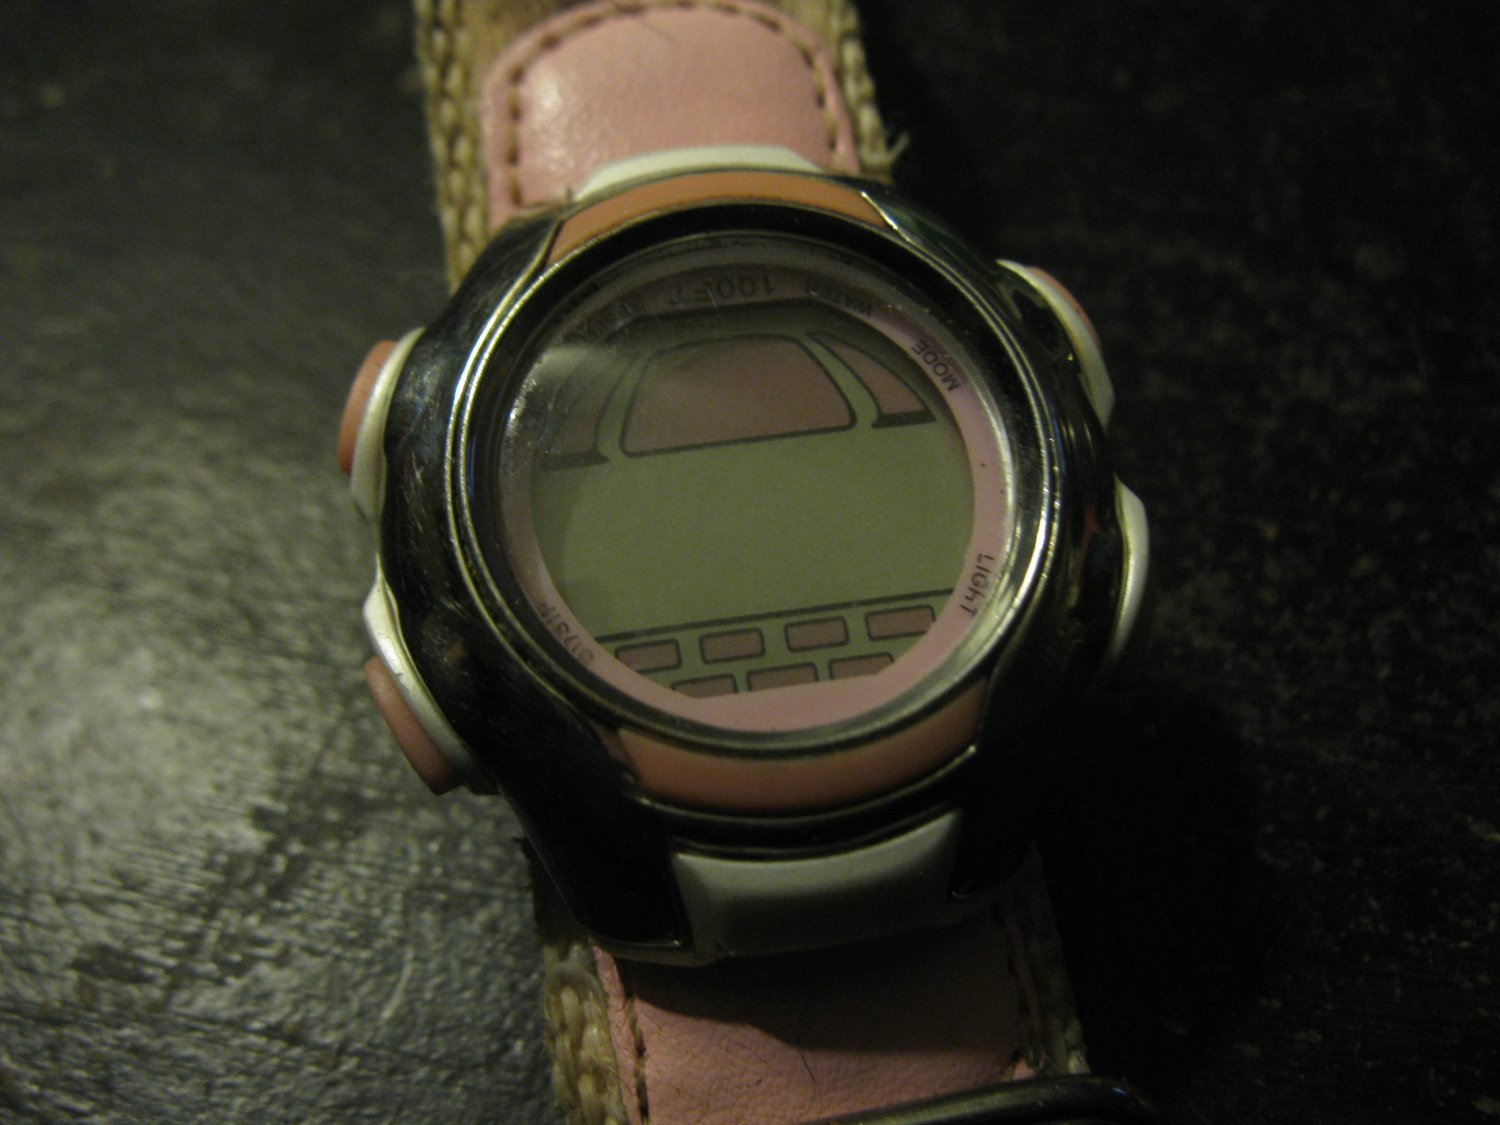 Ladies Pink Sports Watch: Velcro cloth band, Water Resistant 100feet. stop watch feature + more